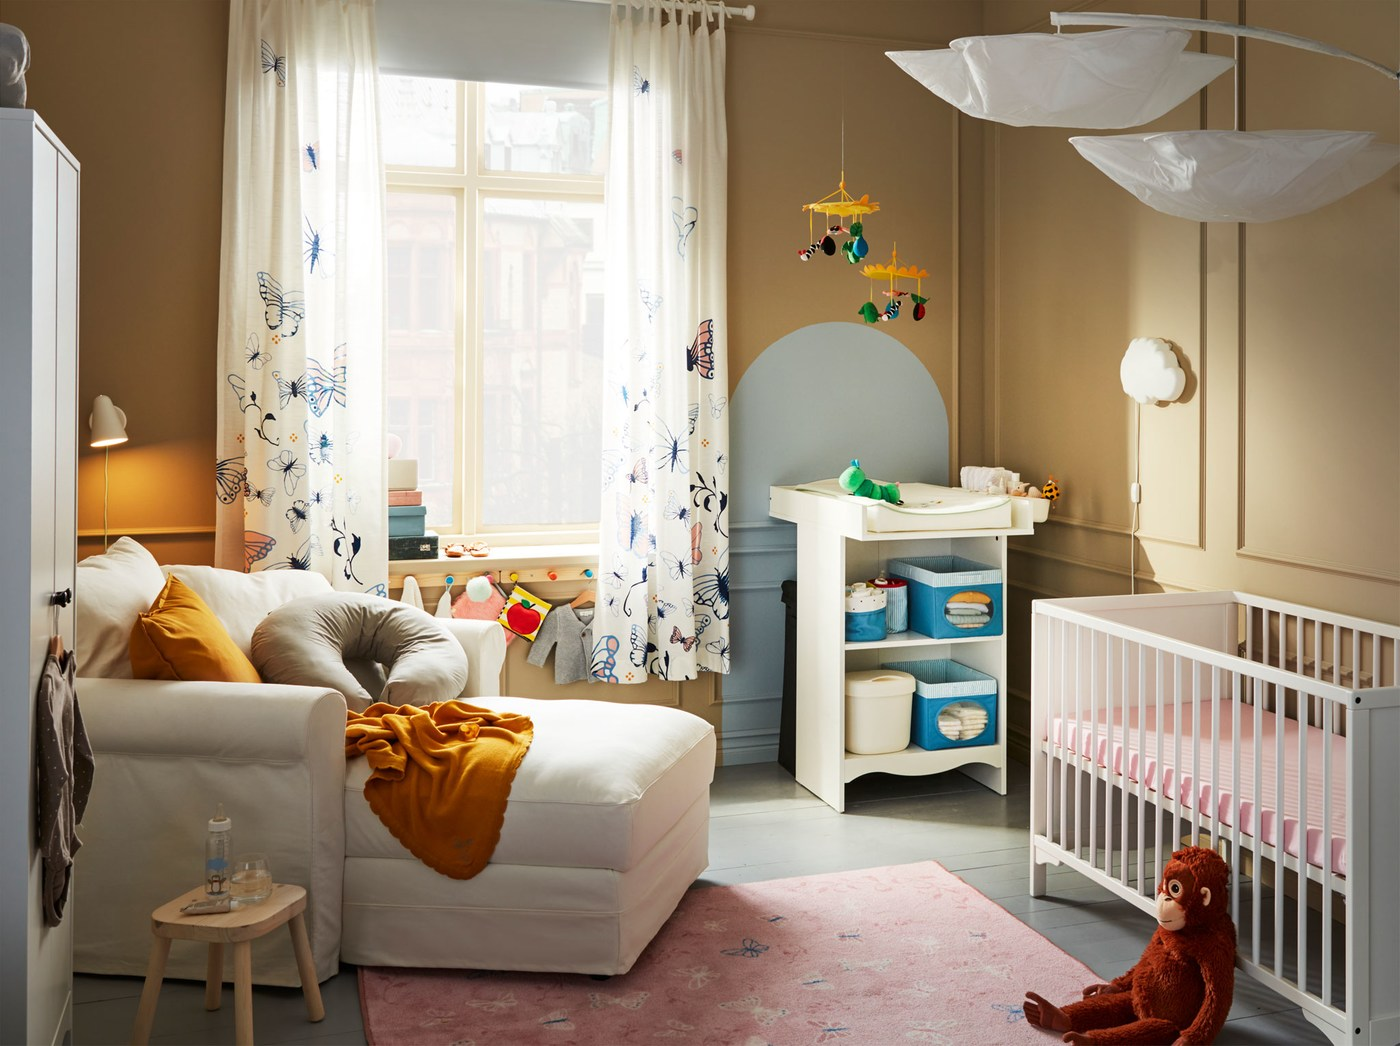 A cosy baby room, with a white IKEA GRÖNLID chaise longue, an IKEA SOLGUL changing table, a white cot, soft toys and mobiles.